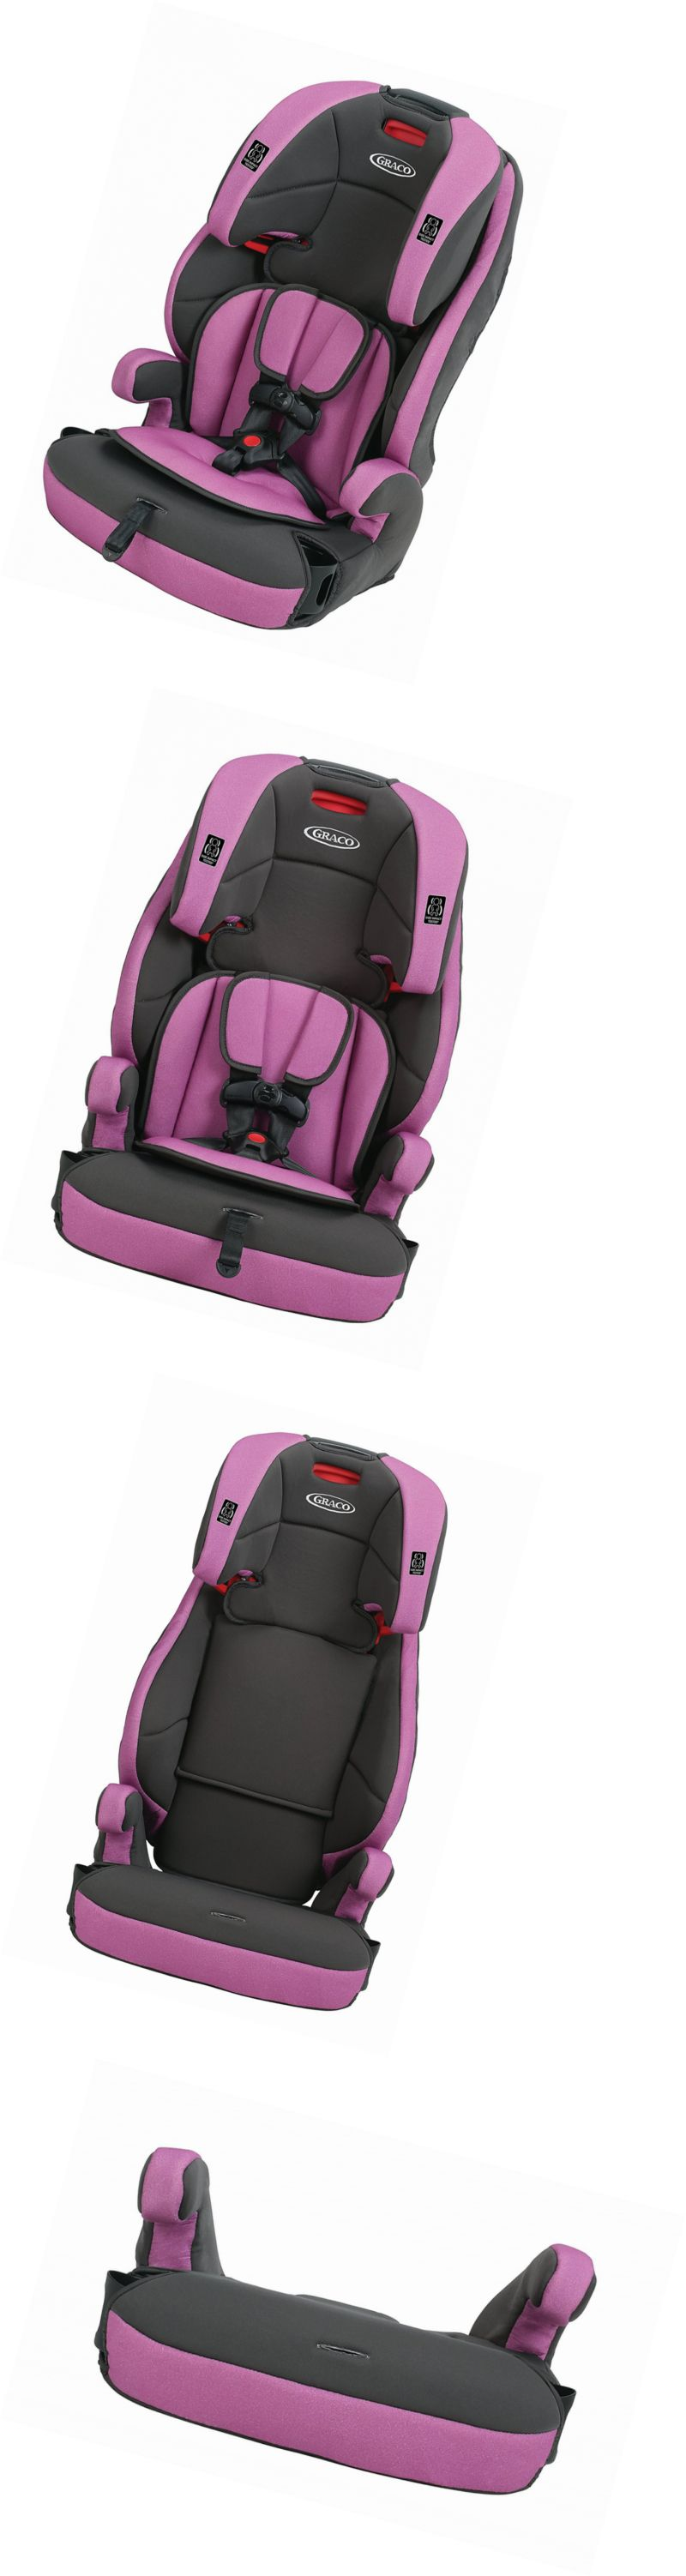 Convertible Car Seat 5 40lbs 66695 Graco Tranzitions 3 In 1 Harness Booster Kyte BUY IT NOW ONLY 10966 On EBay